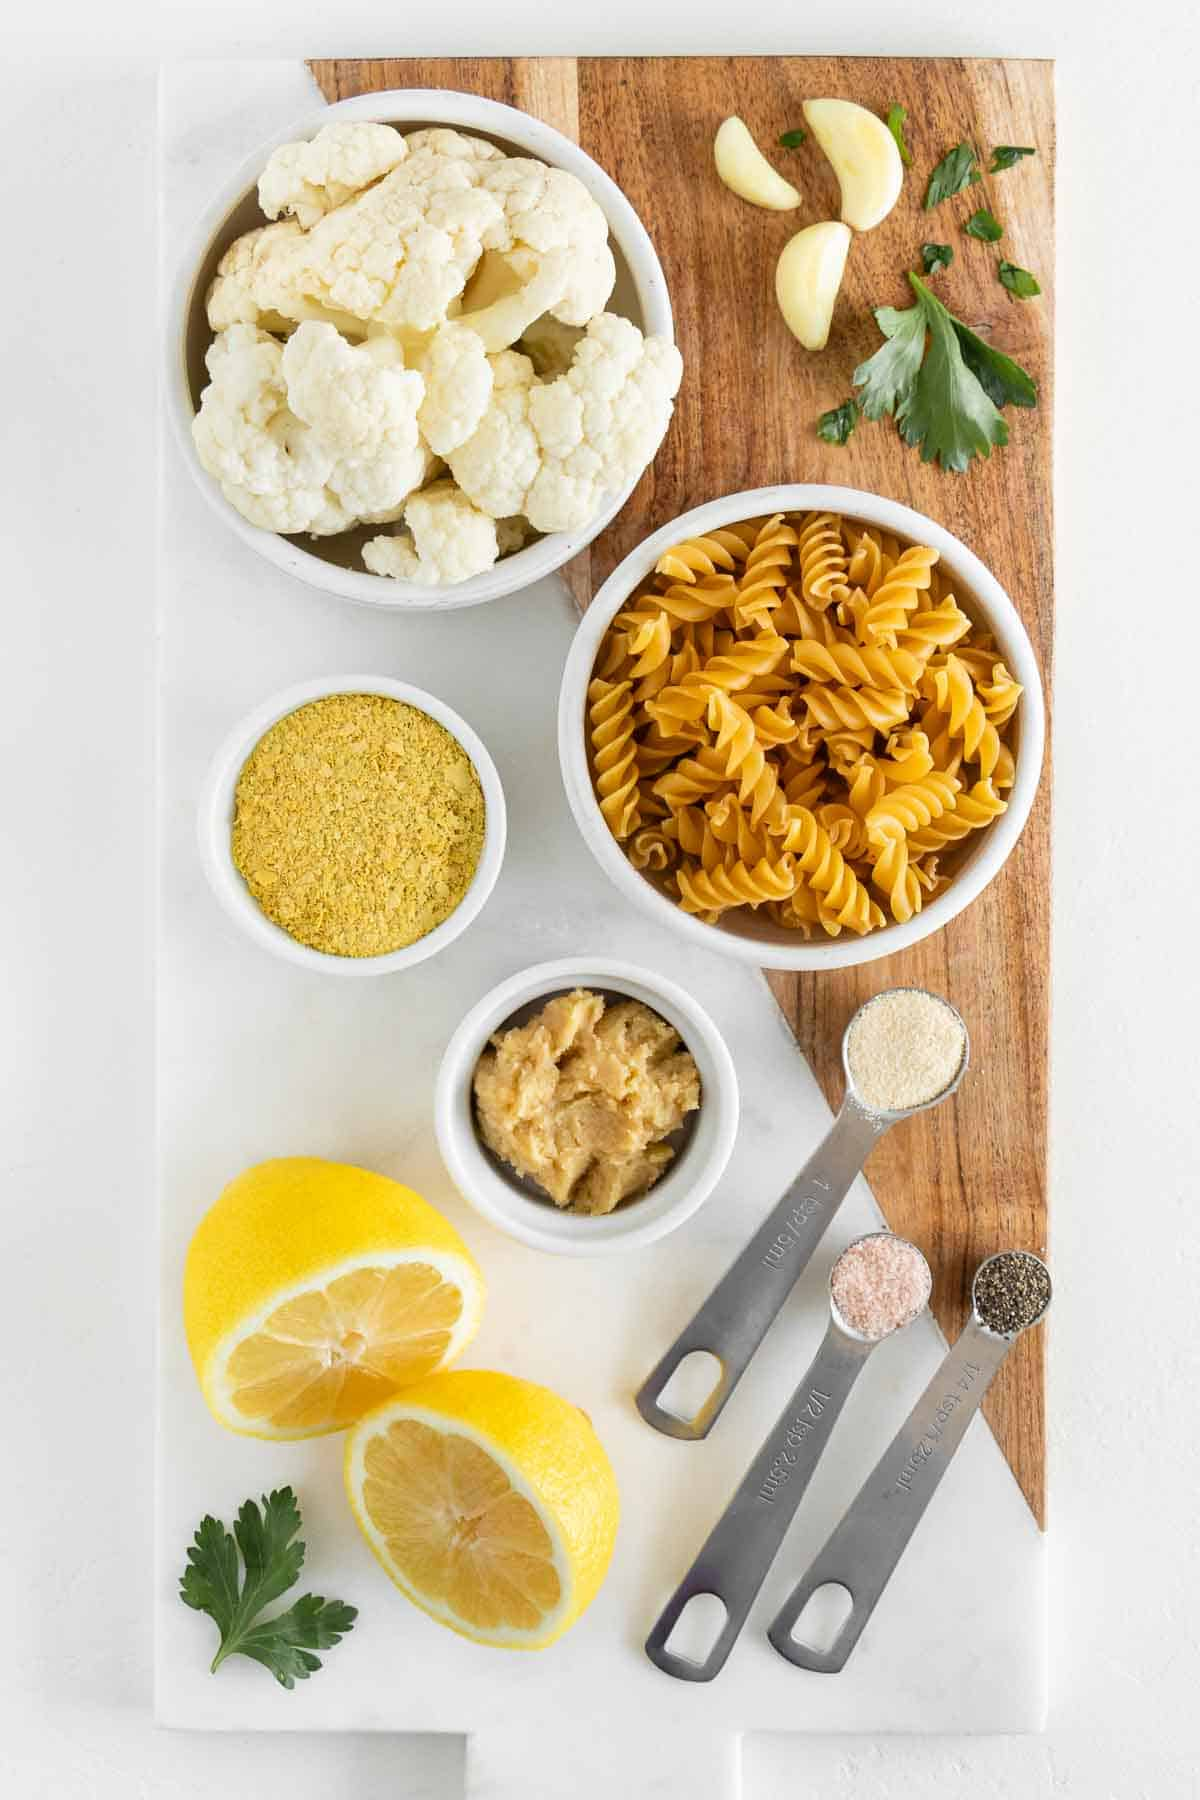 a marble board topped with cauliflower florets, nutritional yeast, rotini pasta shells, sliced lemon, parsley, garlic cloves, and mellow white miso paste